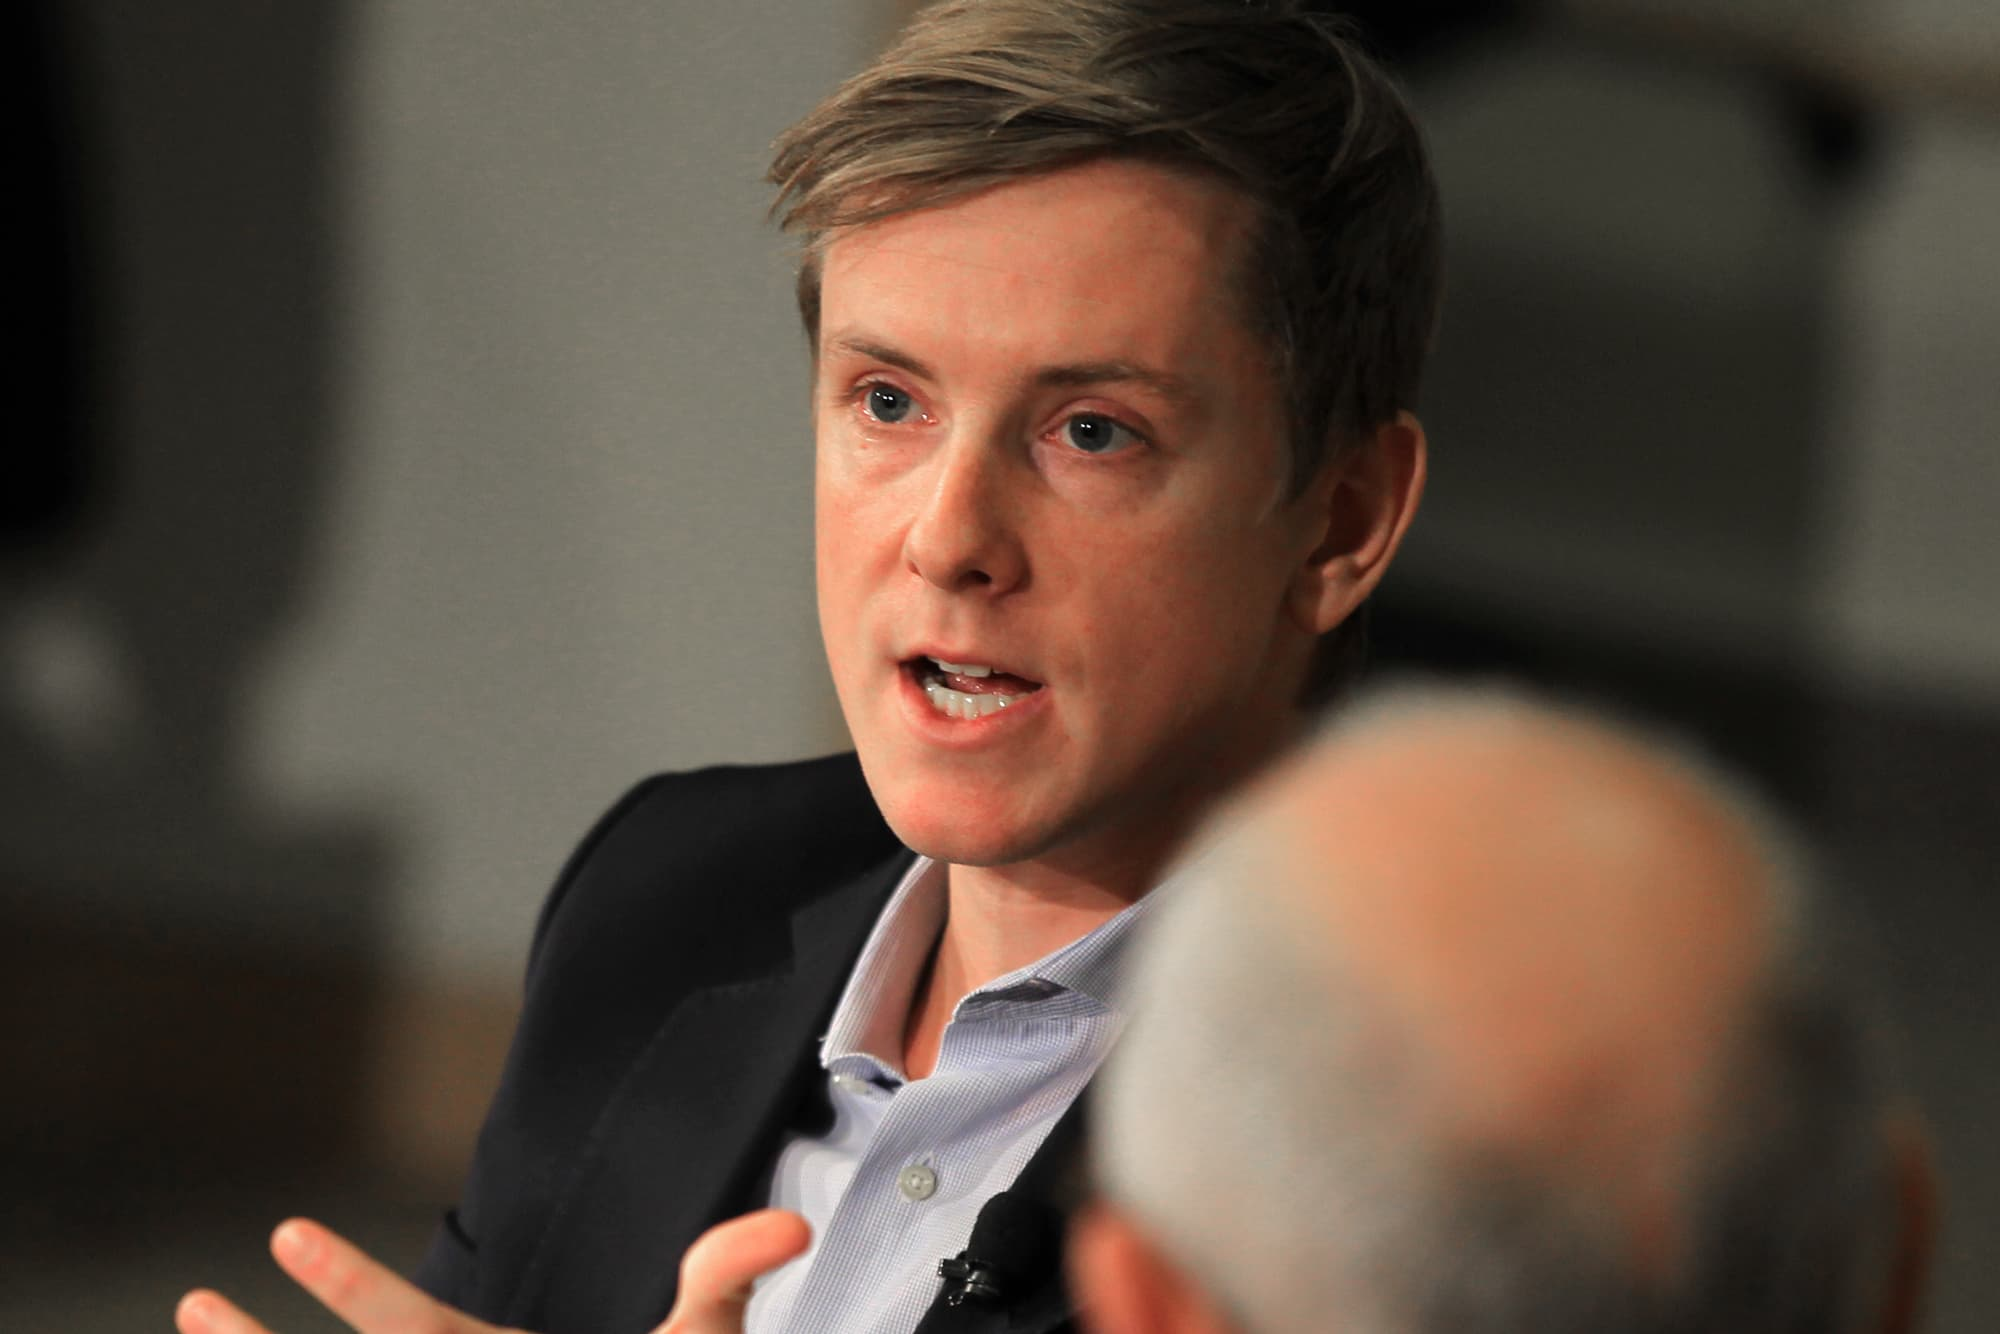 Facebook co-founder Chris Hughes launches $10 million Anti-Monopoly Fund